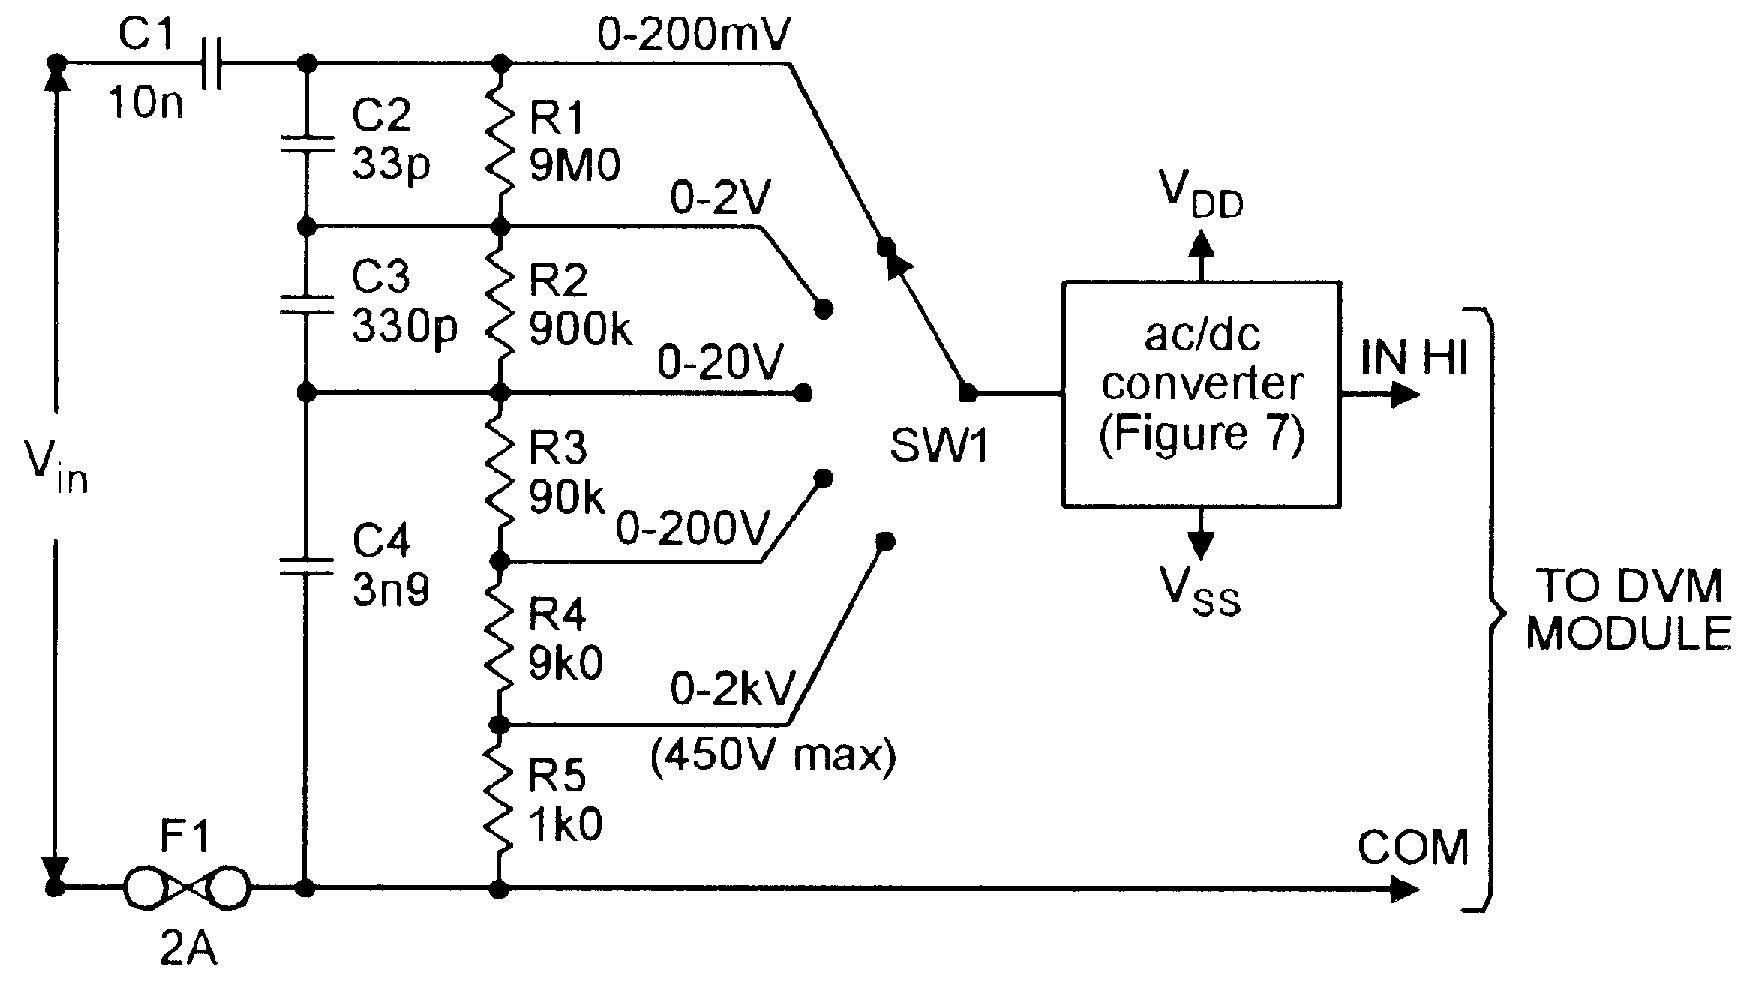 Five-range AC voltmeter converter for use with DVM modules.